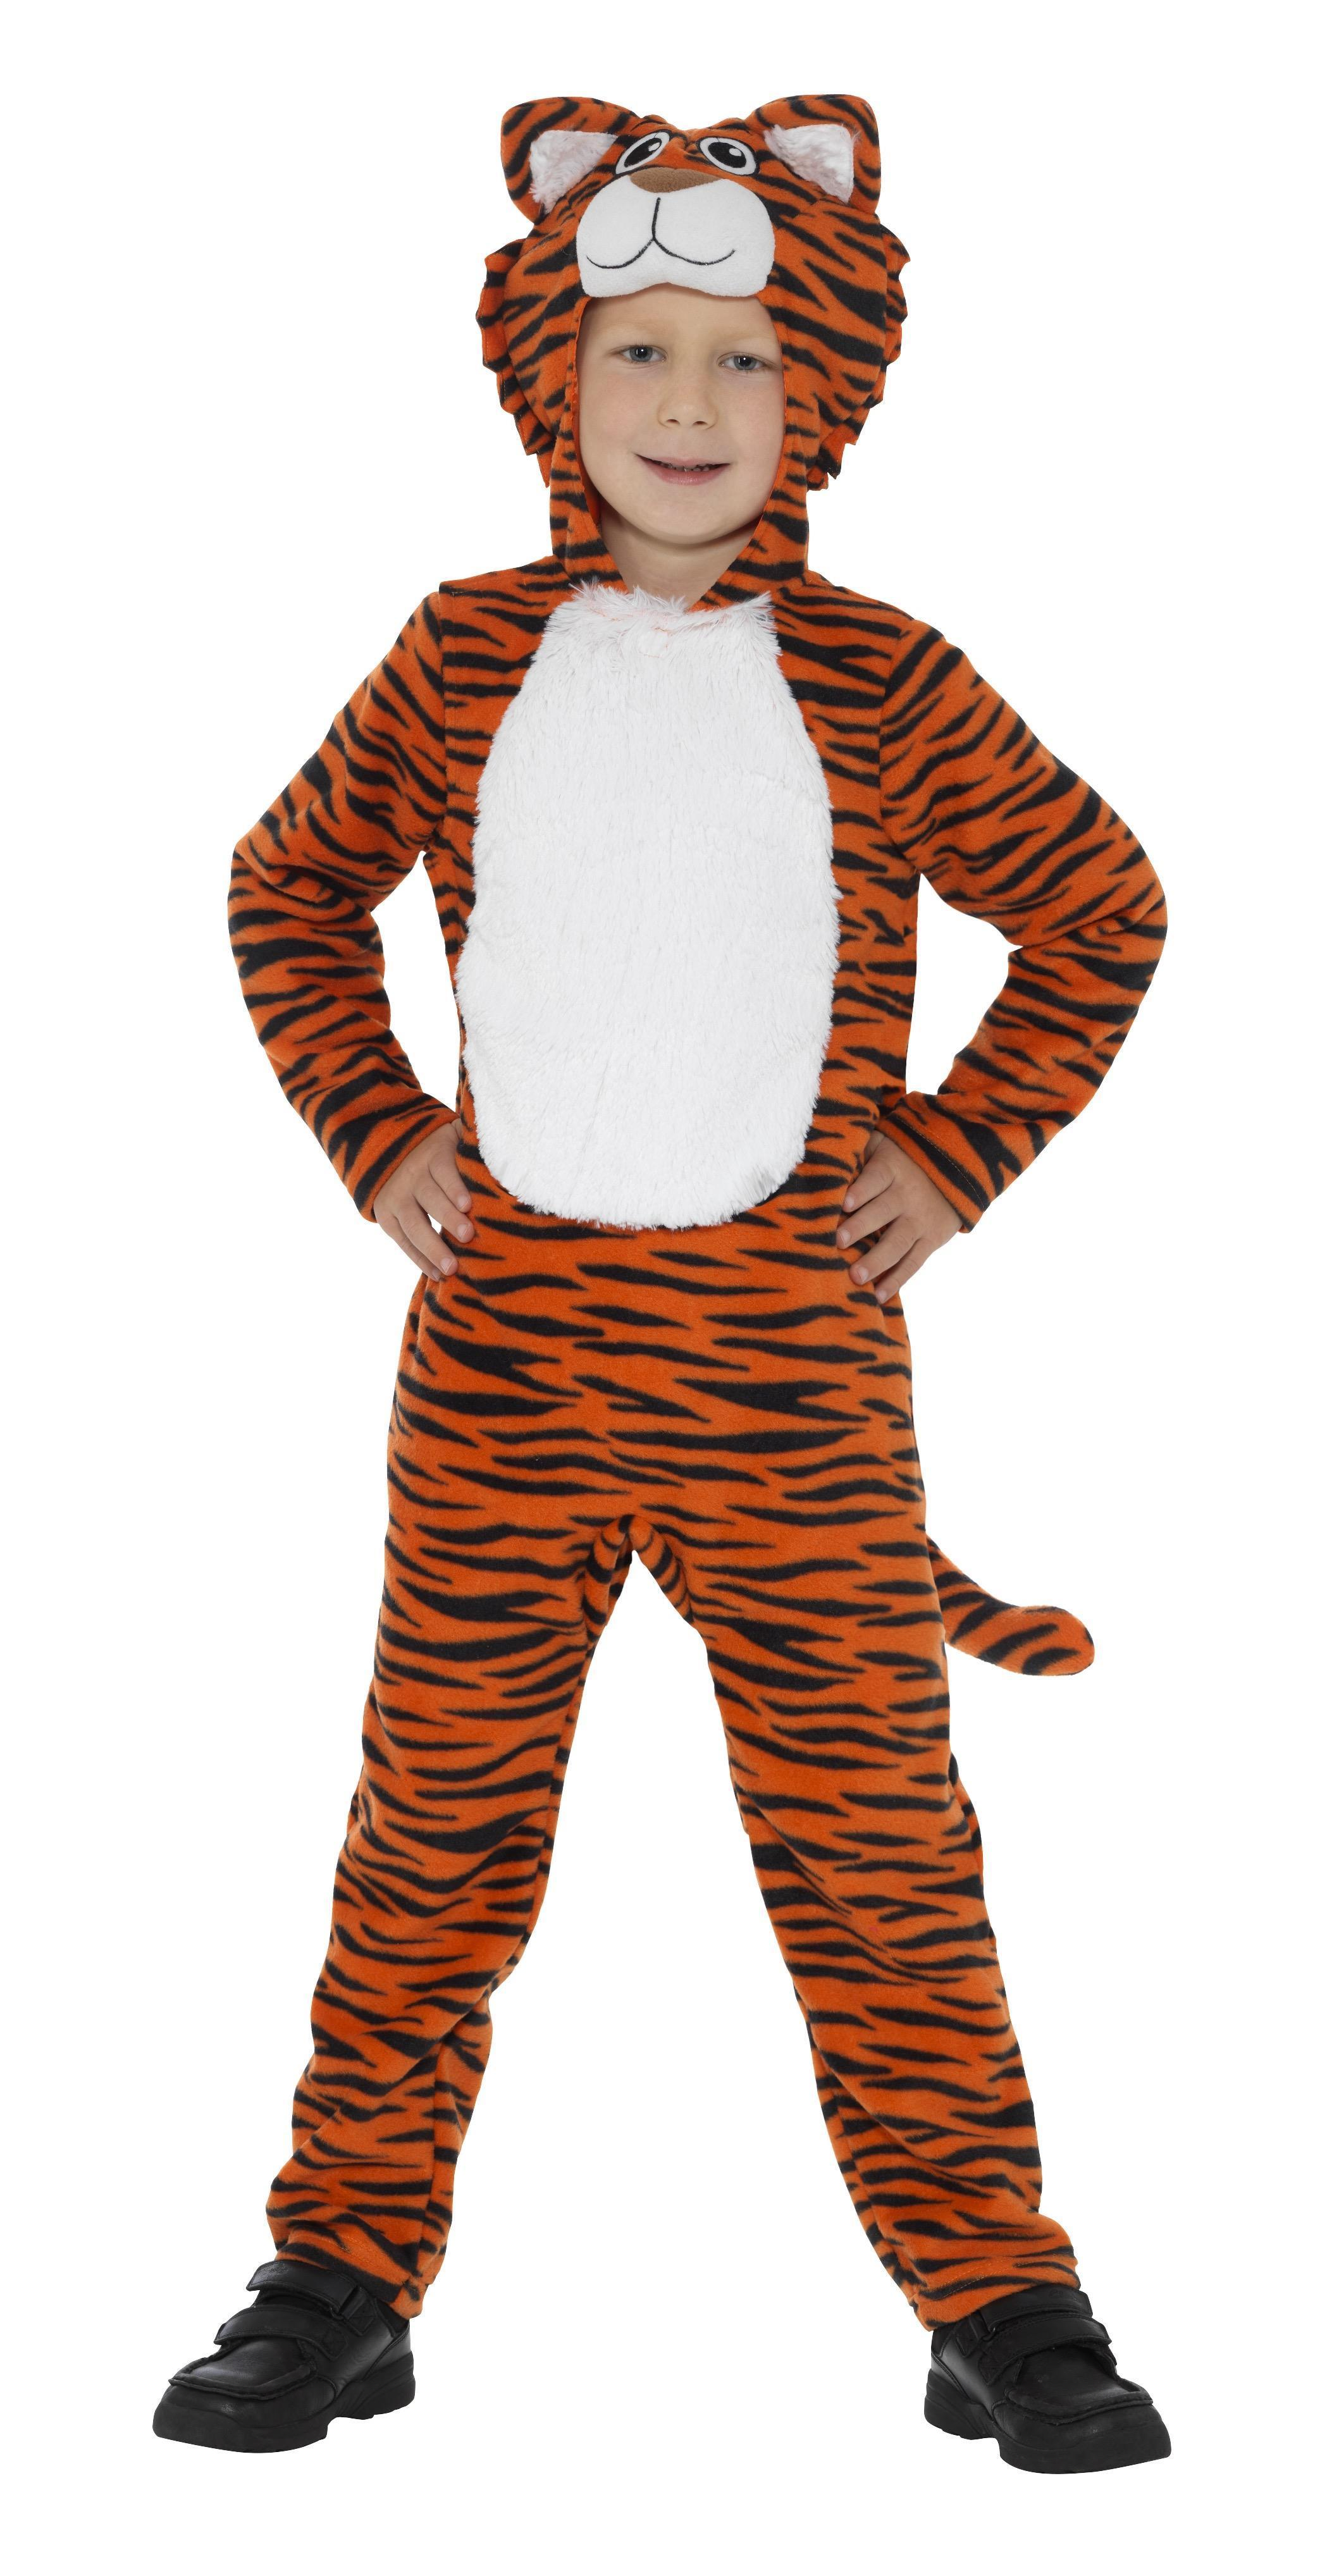 Kids Tiger Costume Orange